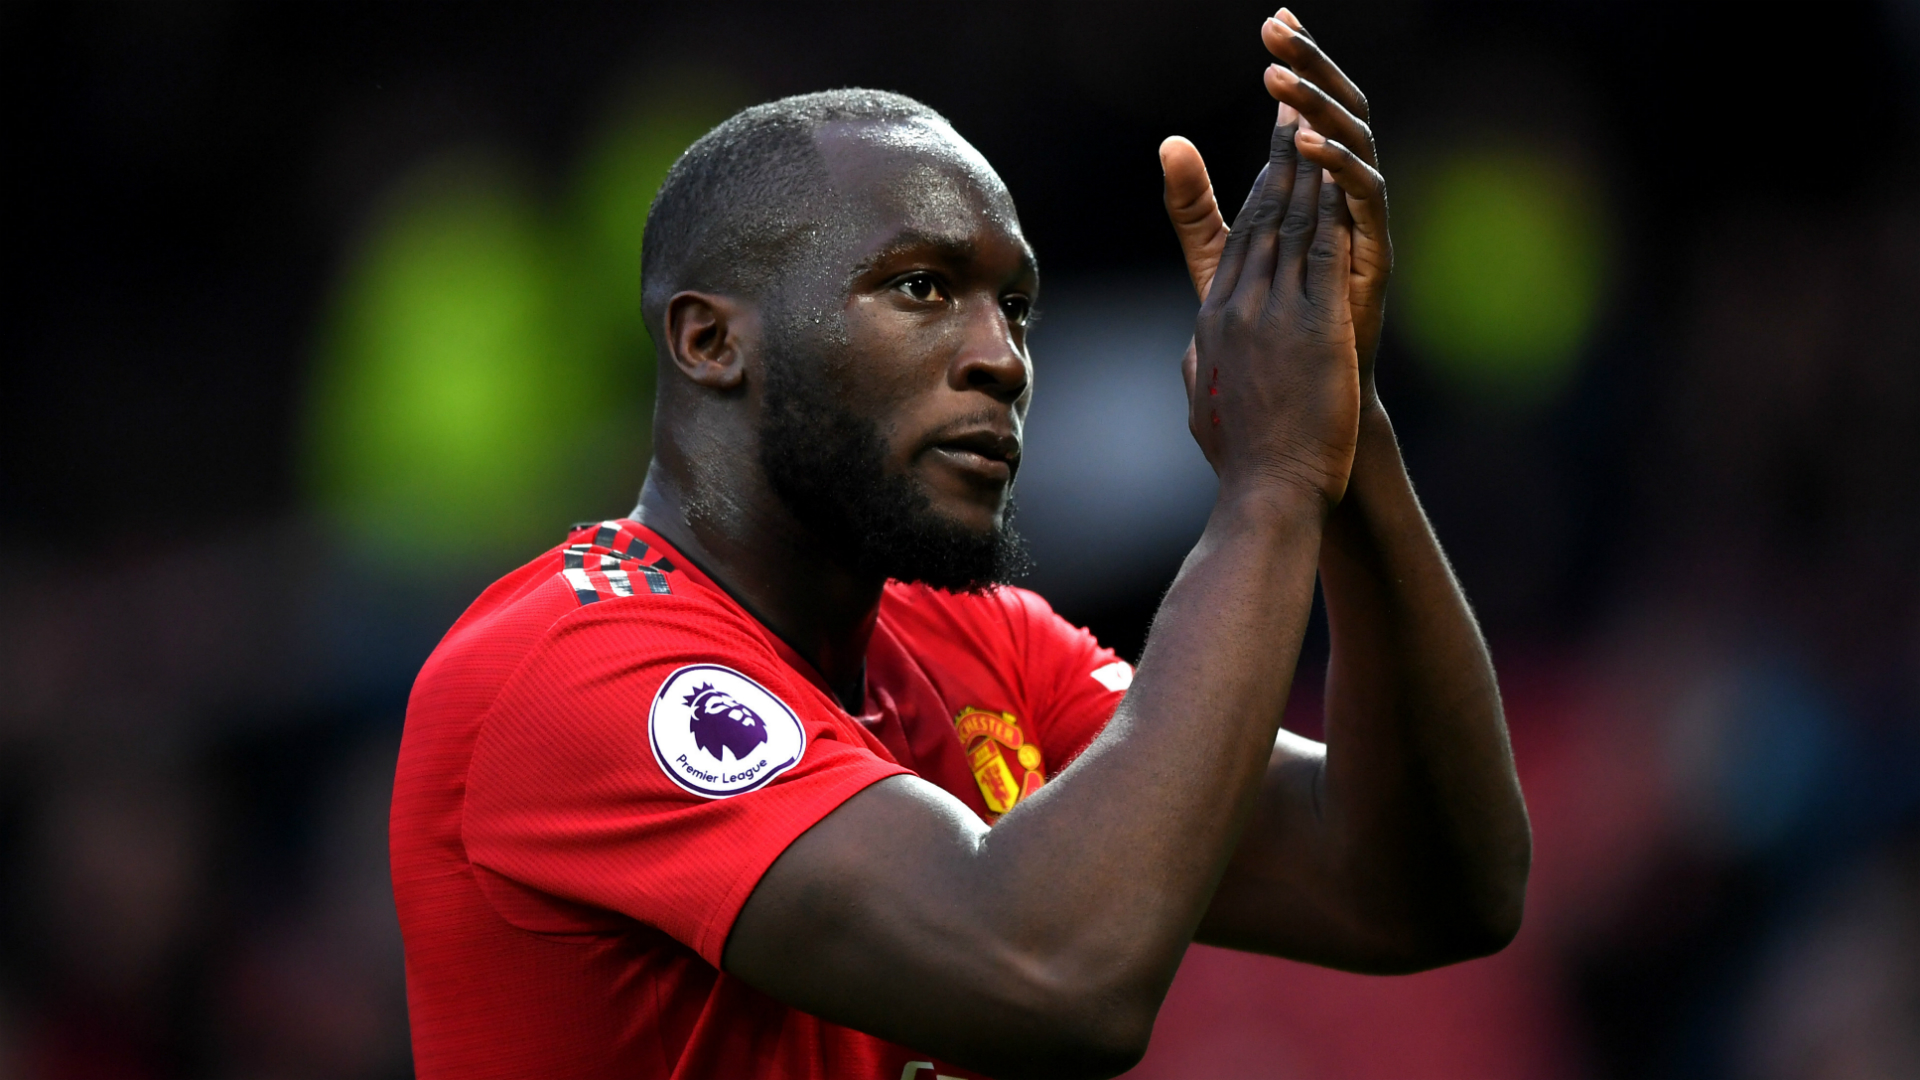 Lukaku casts doubt over United future: I know what I'll do but won't say